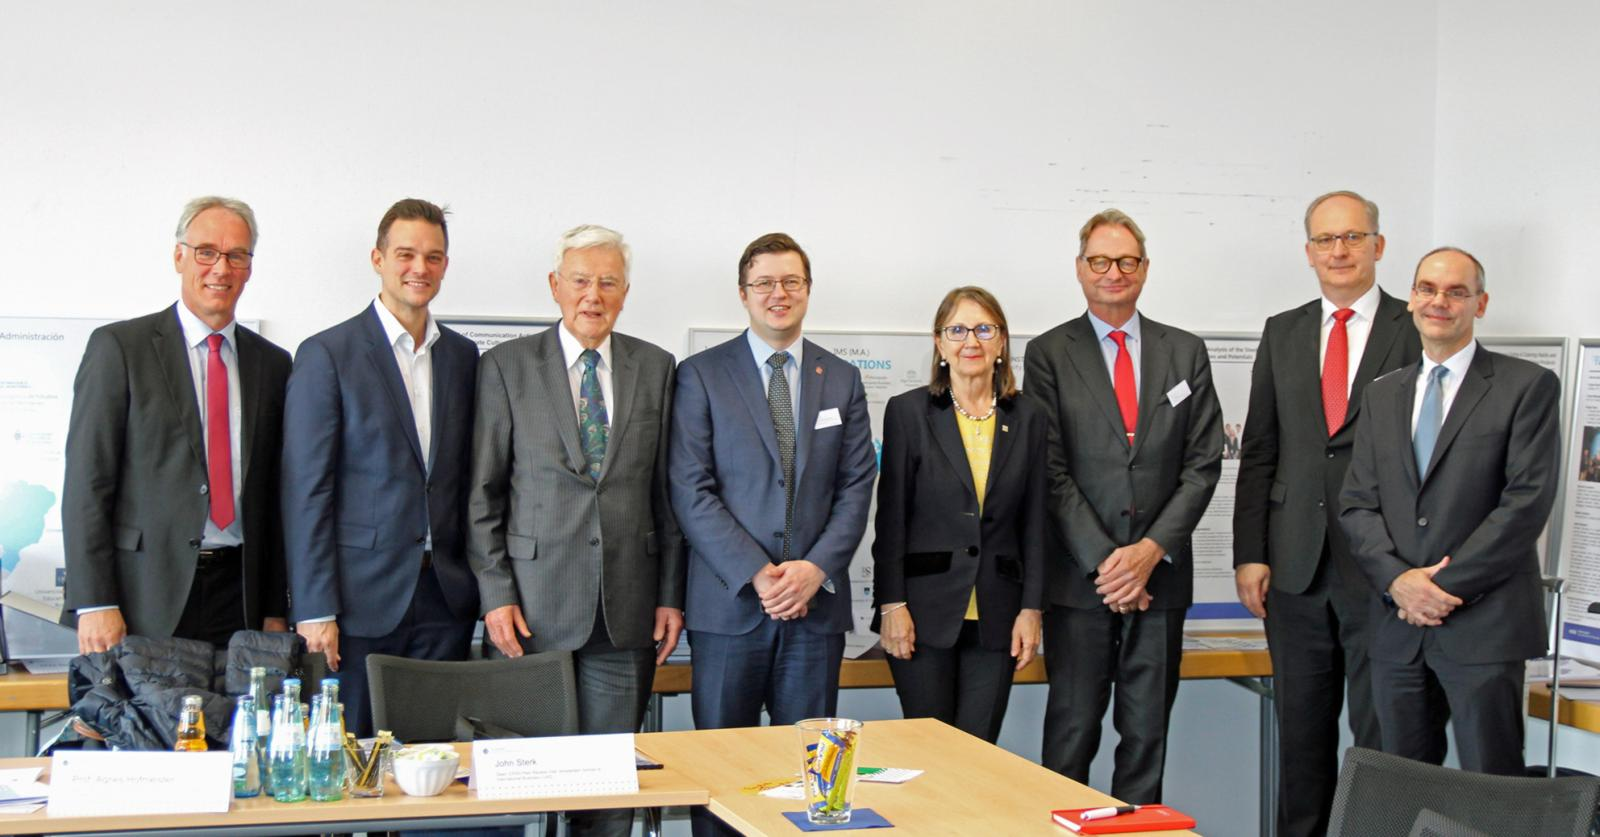 Das Team des MSB gemeinsam mit den EPAS-Gutachtern (v.l.): Dekan Prof. Dr. Dirk Kiso, CALA-Studiengangsleiter Prof. Dr. Marcus Laumann, Timothy Phillips (Praxisvertreter), Prof. Konstantin Krotov (Vorsitzender der Kommission und Head of School, Graduate School of Management, St. Petersburg University), Prof. Agnes Hofmeister (Dean Emerita, Corvinus Business School, Corvinus University of Budapest), John Sterk (Dean, Amsterdam School of International Business, Amsterdam University of Applied Sciences), EBP-Studiengangsleiter Prof. Dr. Ulrich Balz und IMS-Studiengangsleiter Prof. Dr. Bert Kiel. (Foto: FH Münster/MSB)